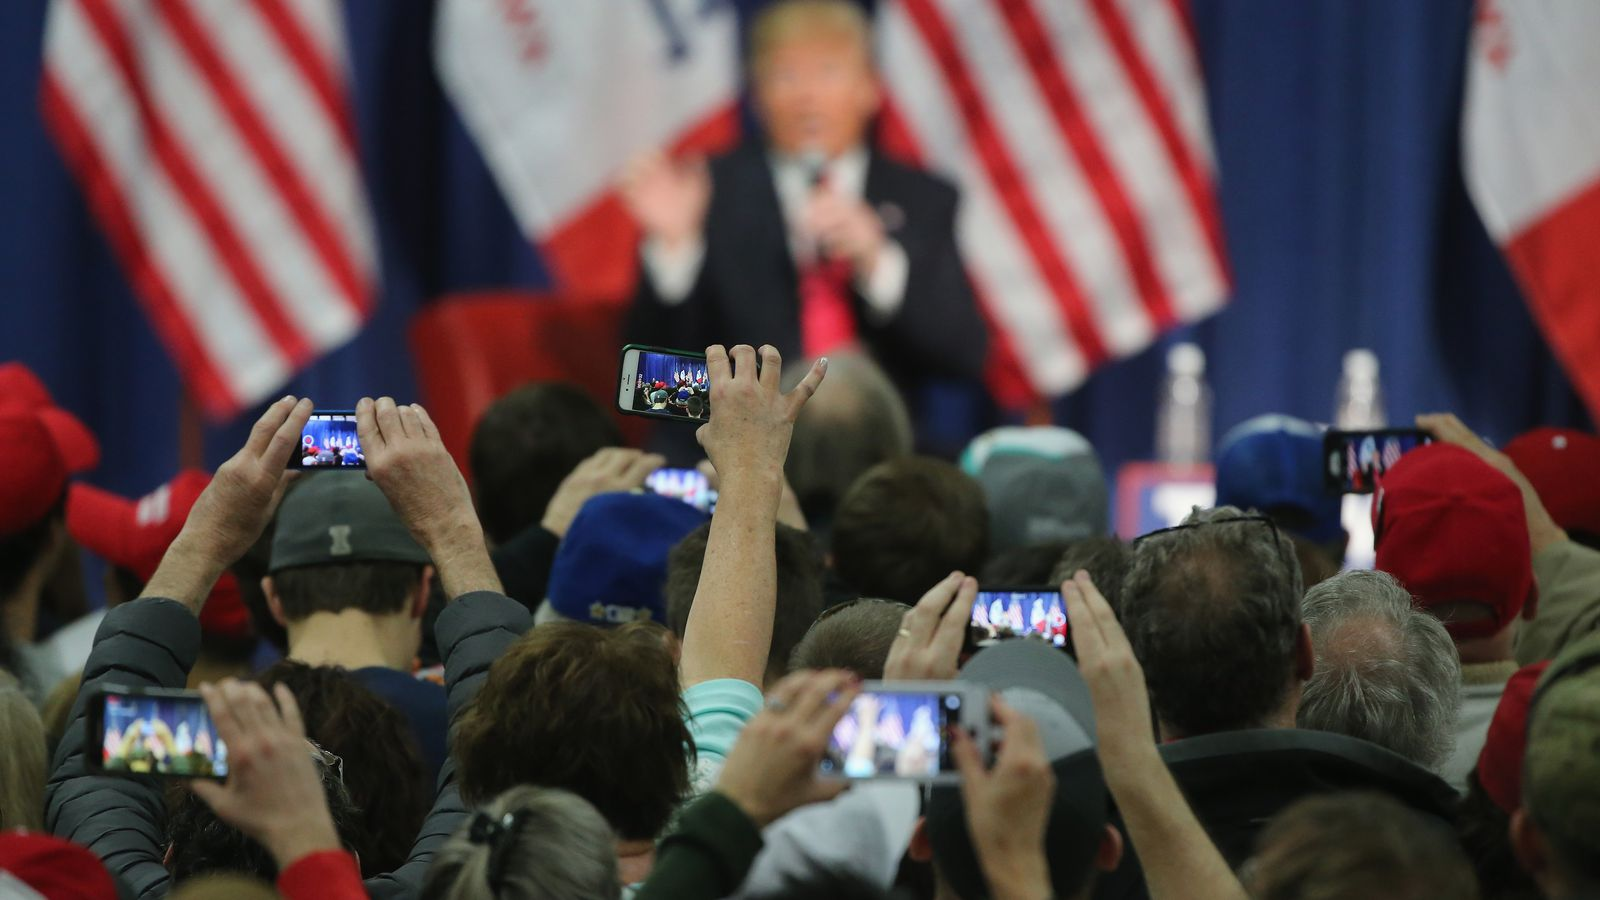 Donald Trump has surrendered his Android phone